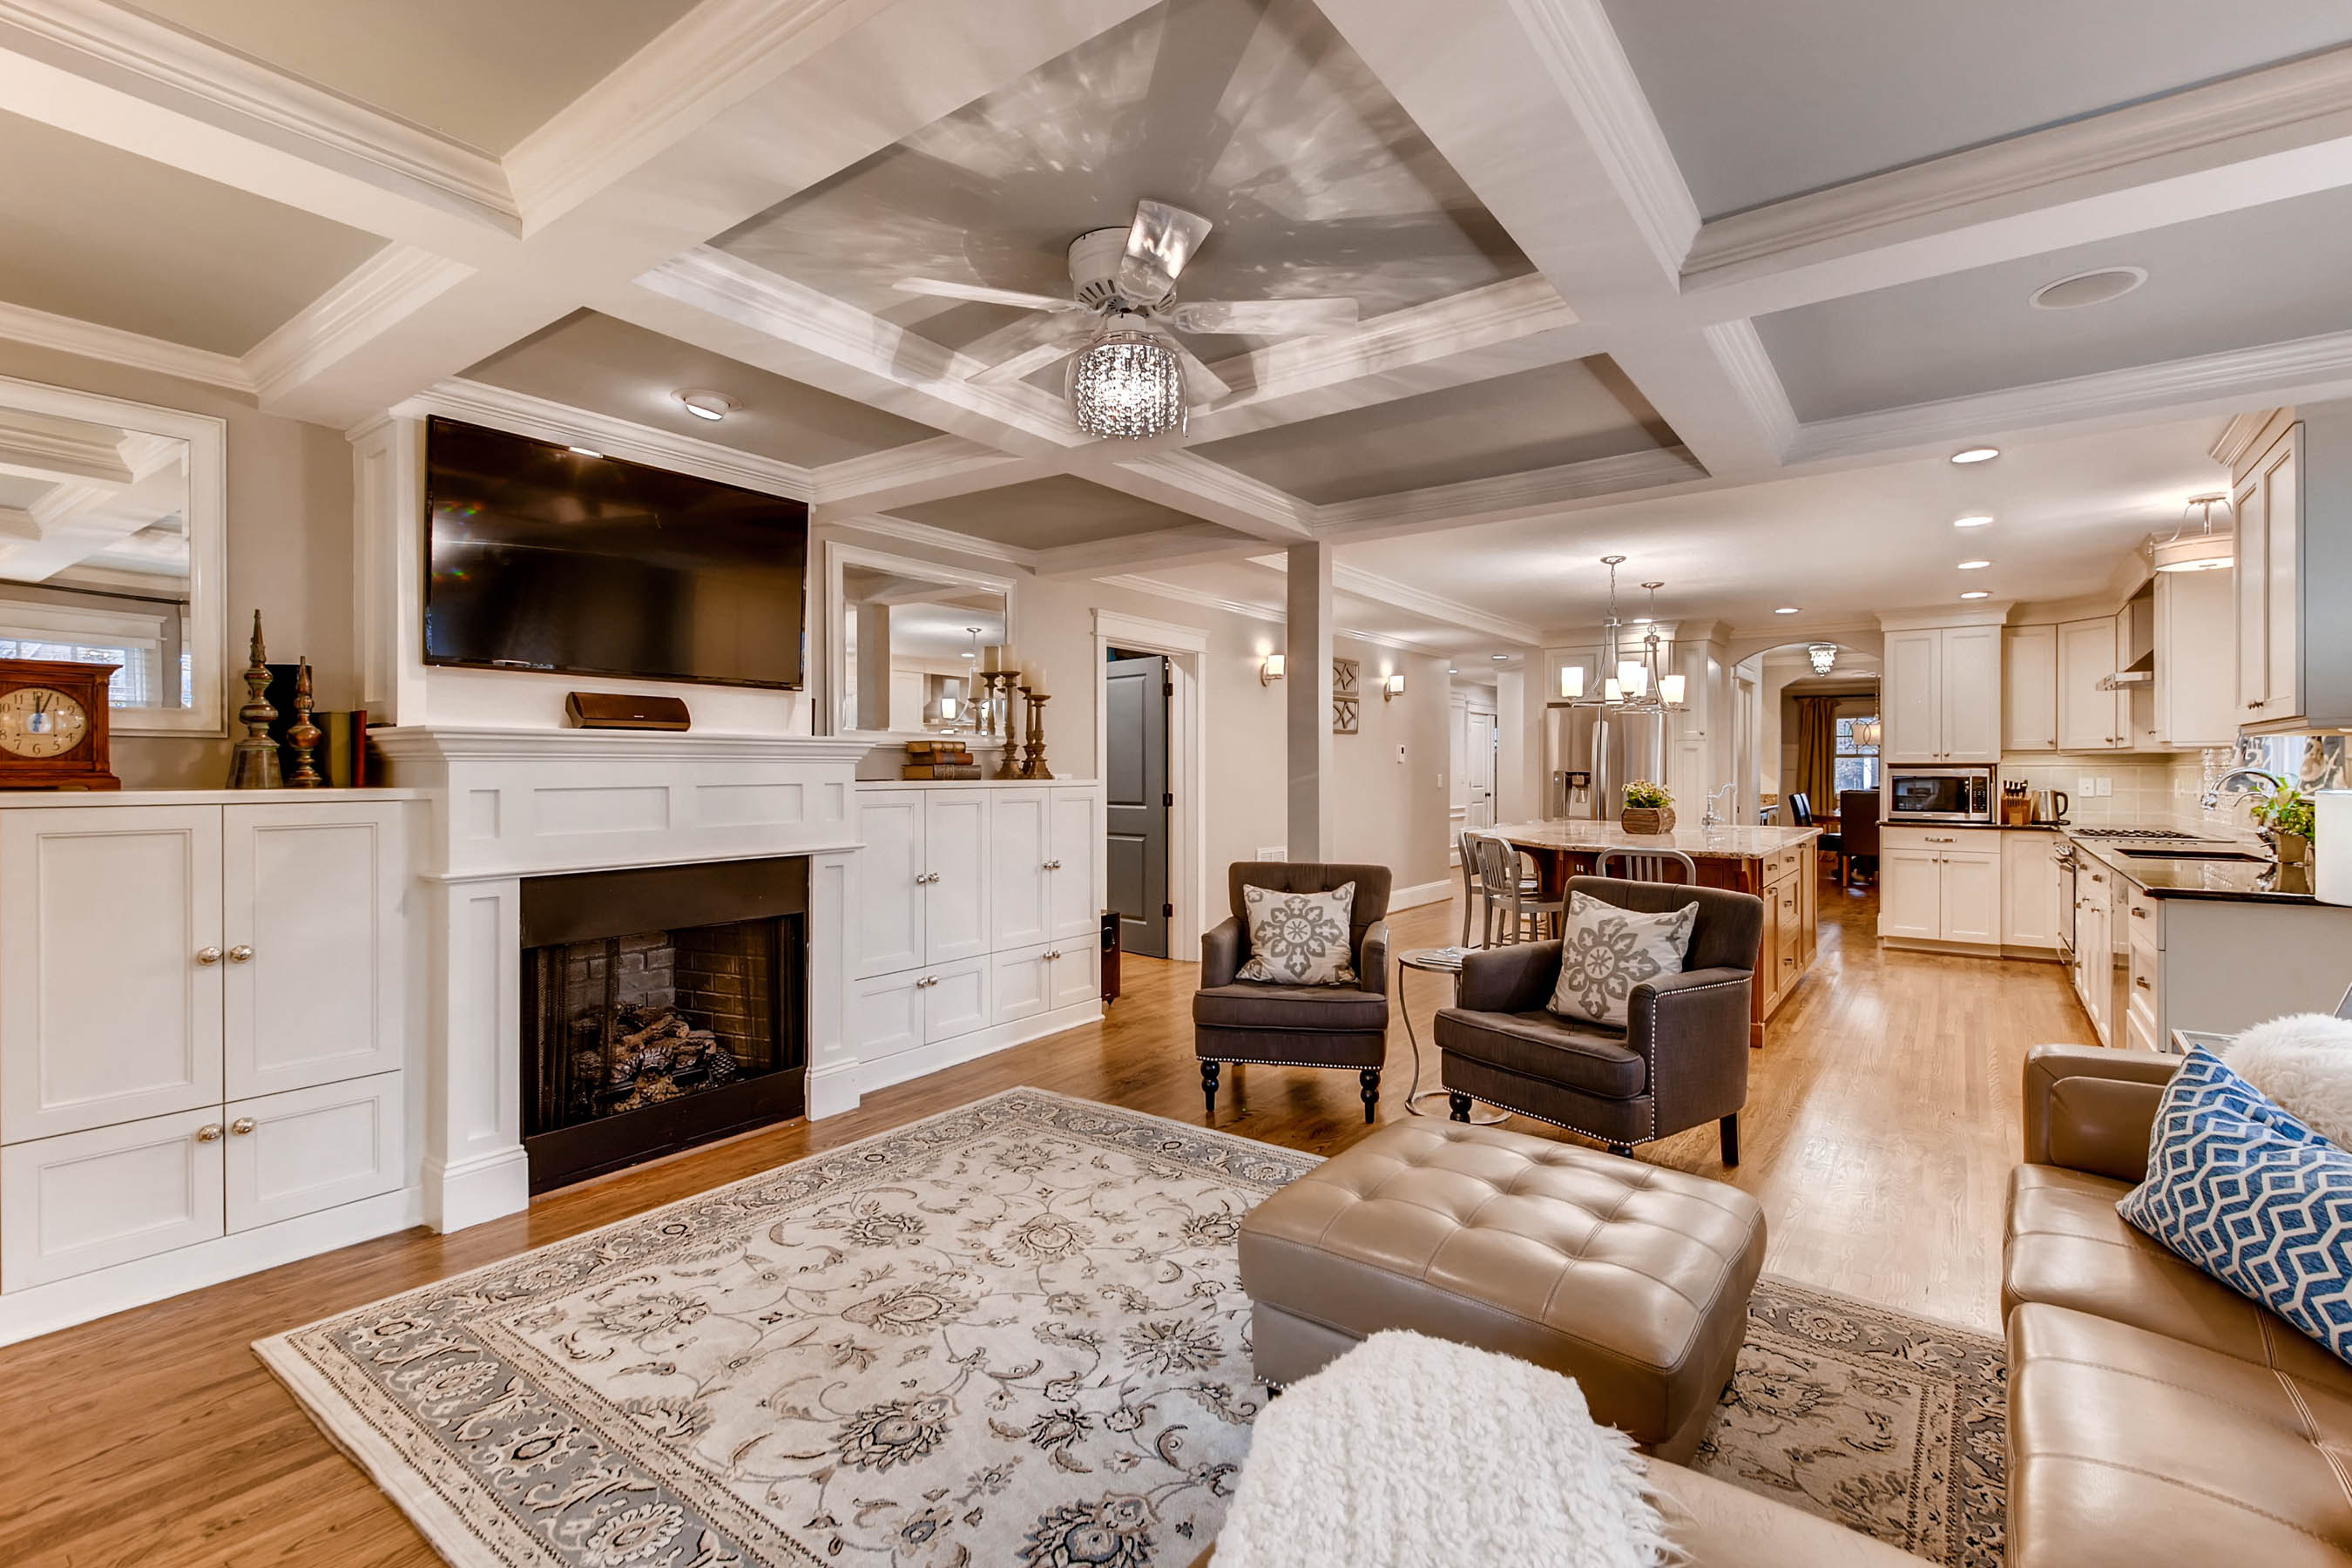 Real Estate Photography and Marketing Services Launch in Charlotte